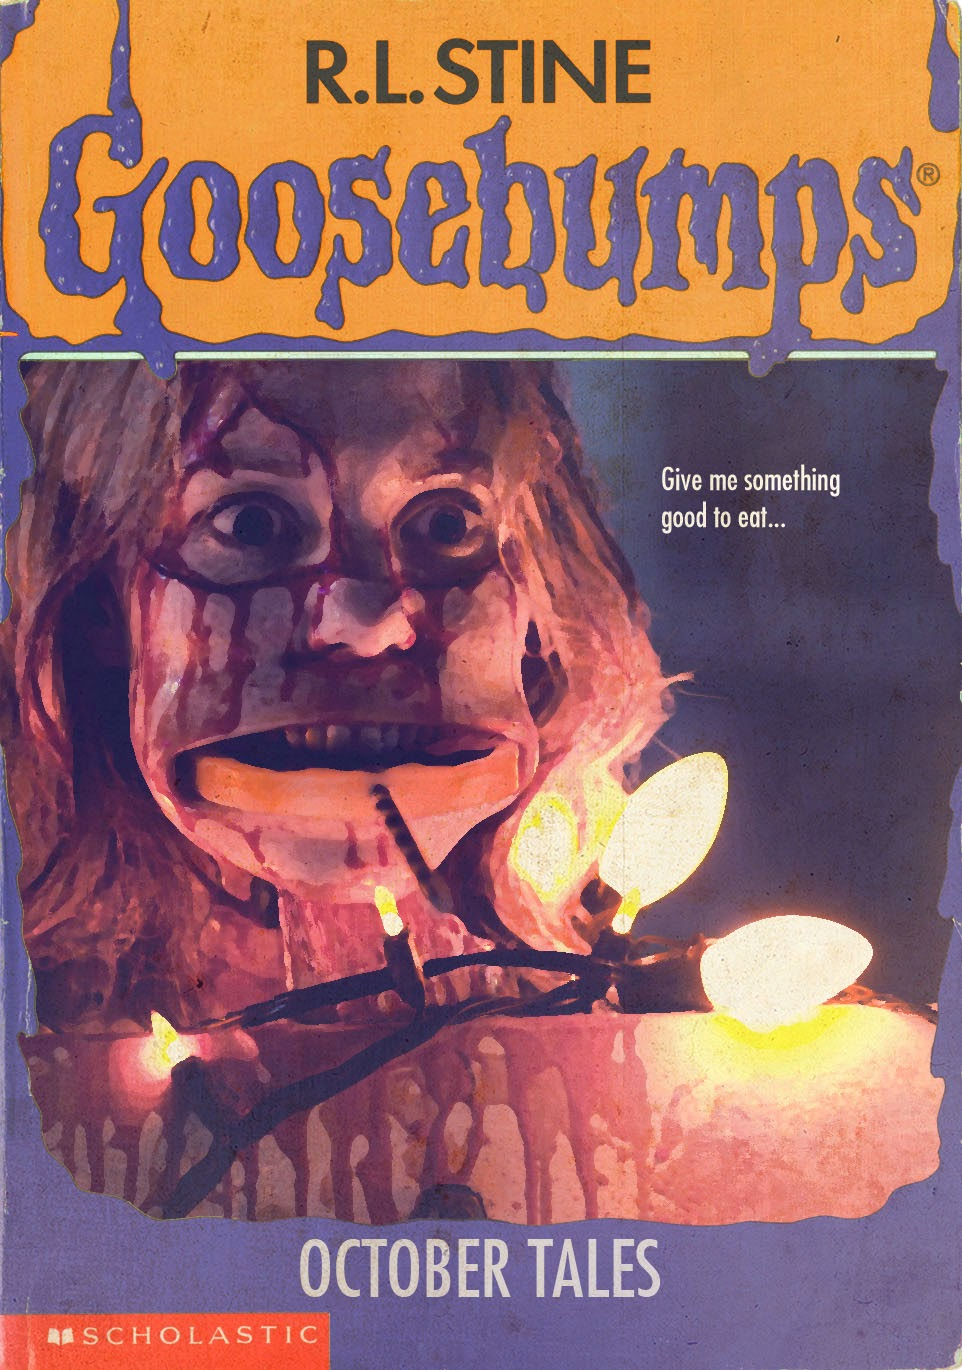 Halloween' Re-Imagined as R.L. Stine 'Goosebumps' Book | Halloween ...